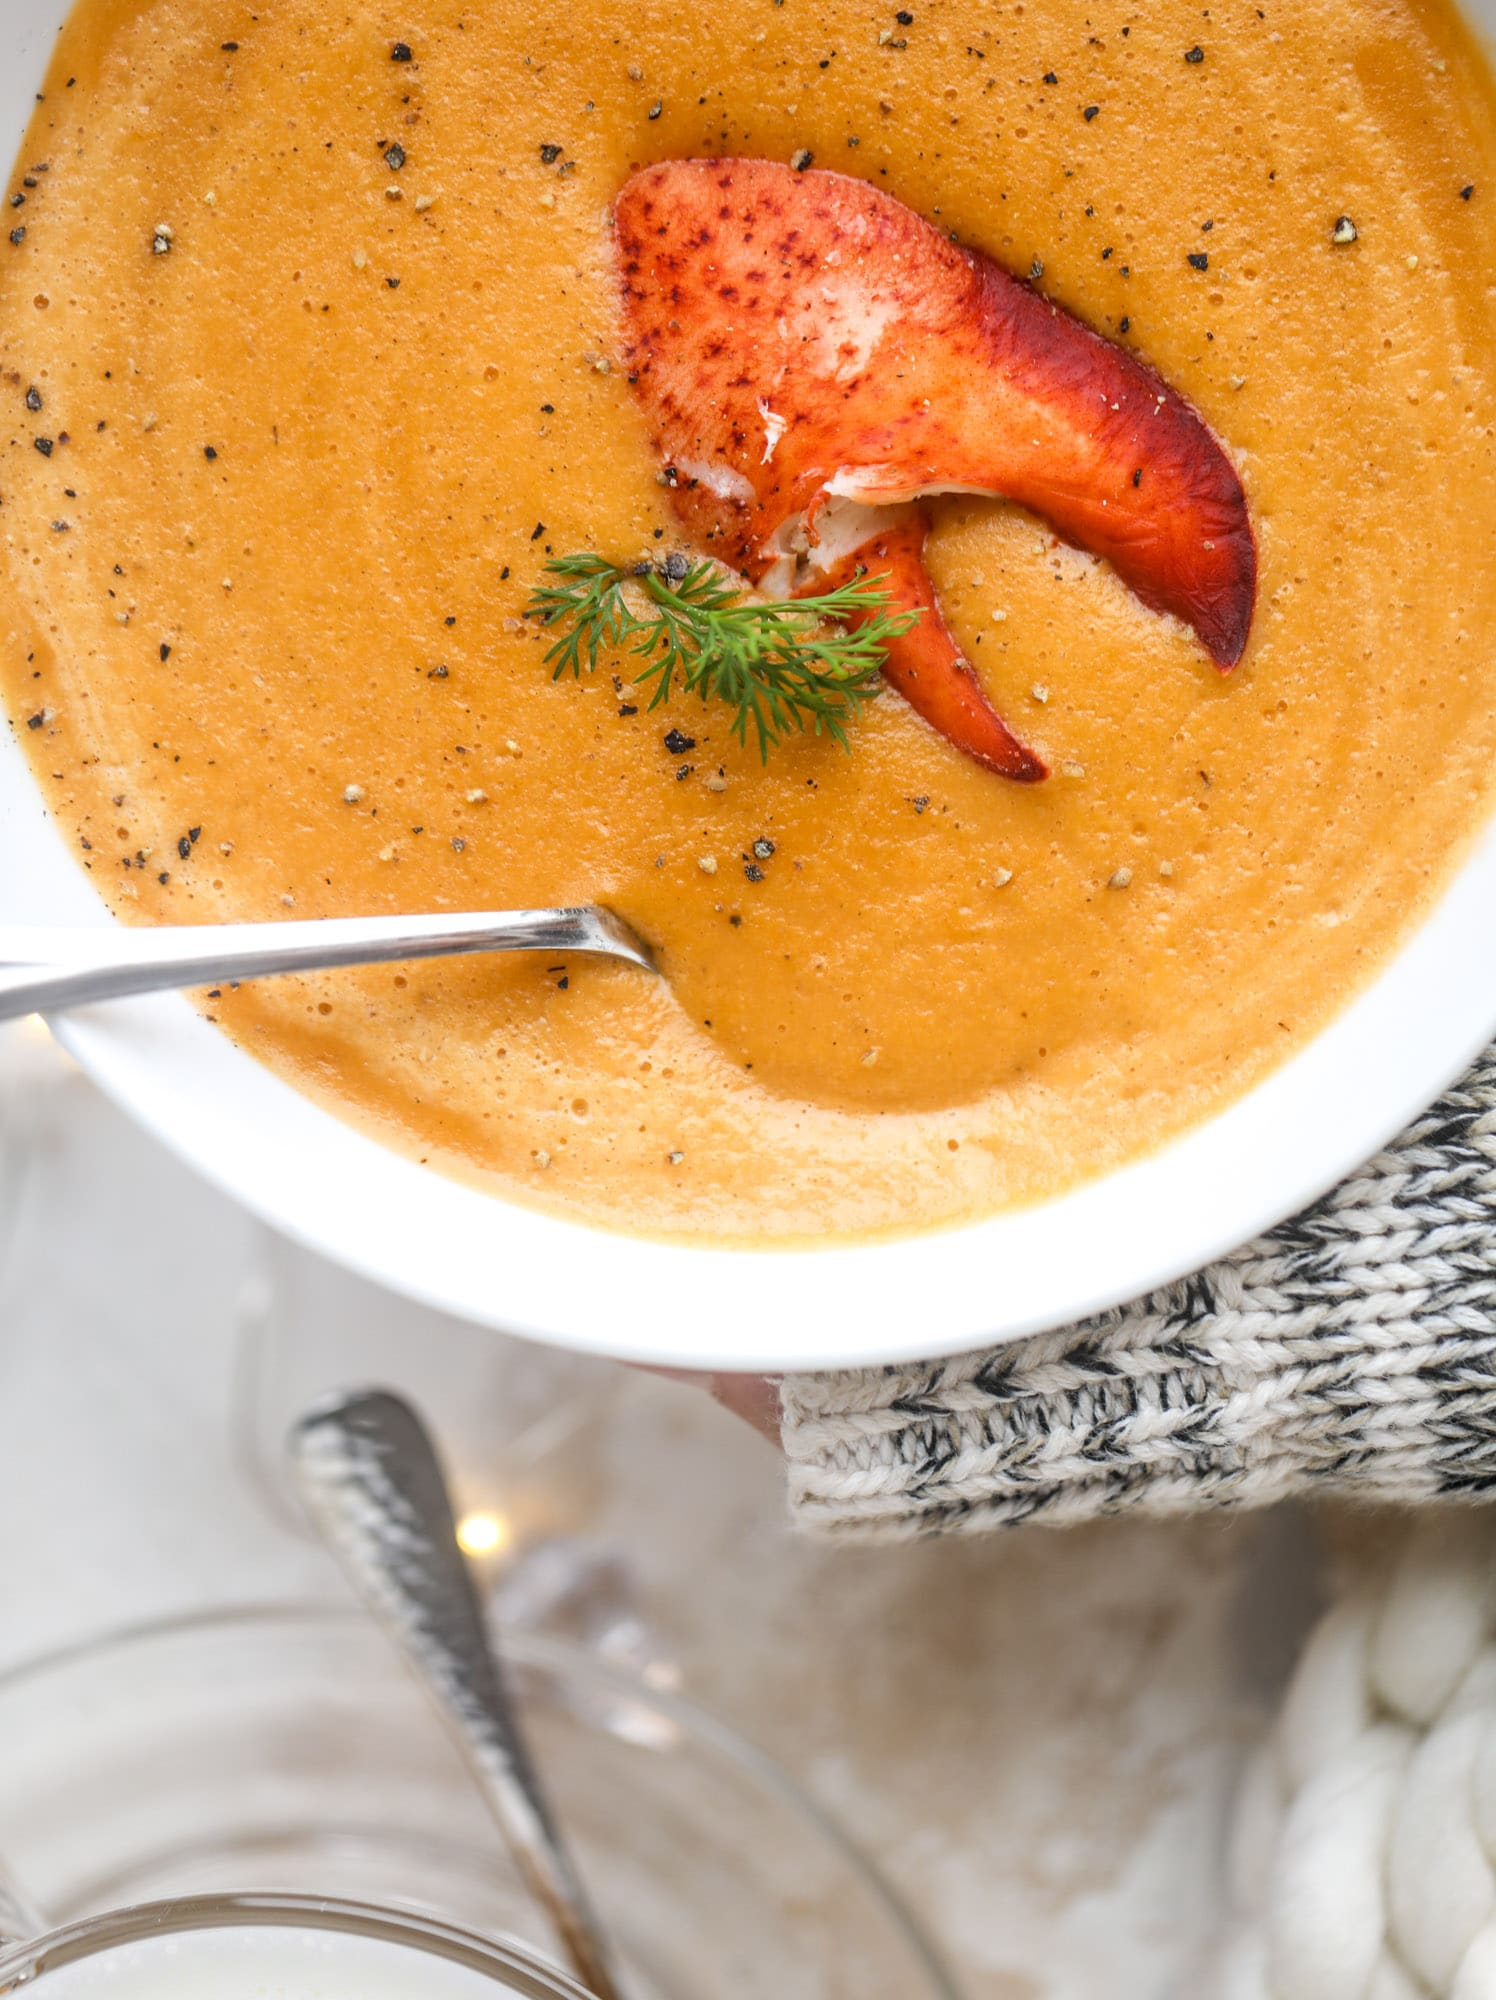 This lobster bisque recipe is delicious, easy and always a crowd pleaser! It's so simple to make at home and it's a rich, decadent treat to serve your family. I also show you how to make a lobster cappuccino, which is lobster bisque with foamed cream! I howsweeteats.com #lobster #bisque